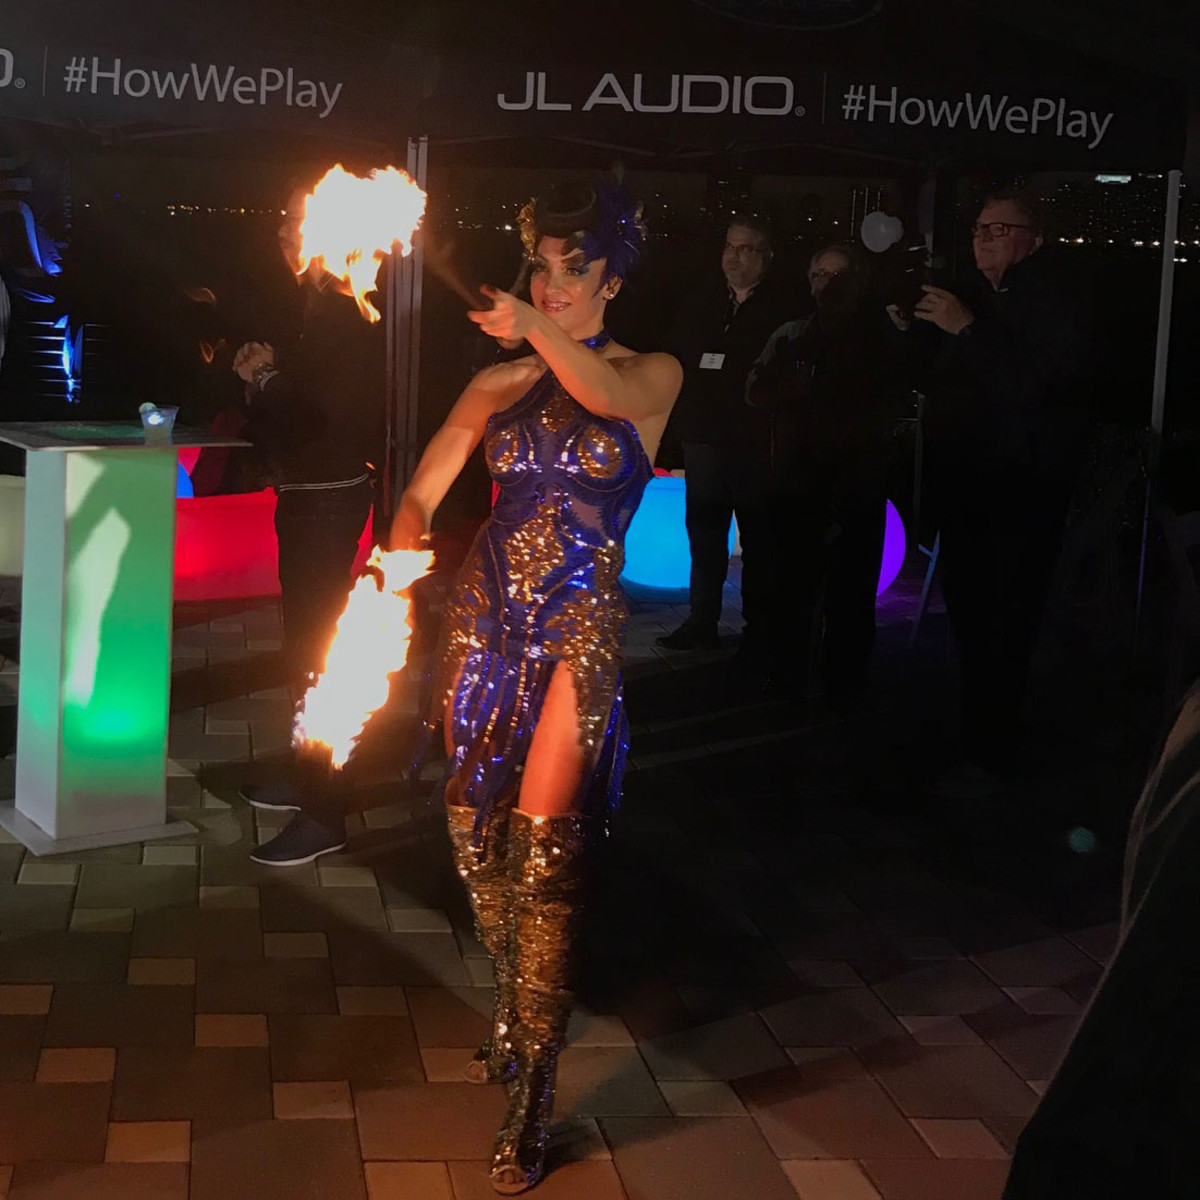 JL celebrated their launch in Miami with some fire dancers to show how hot their new product was.